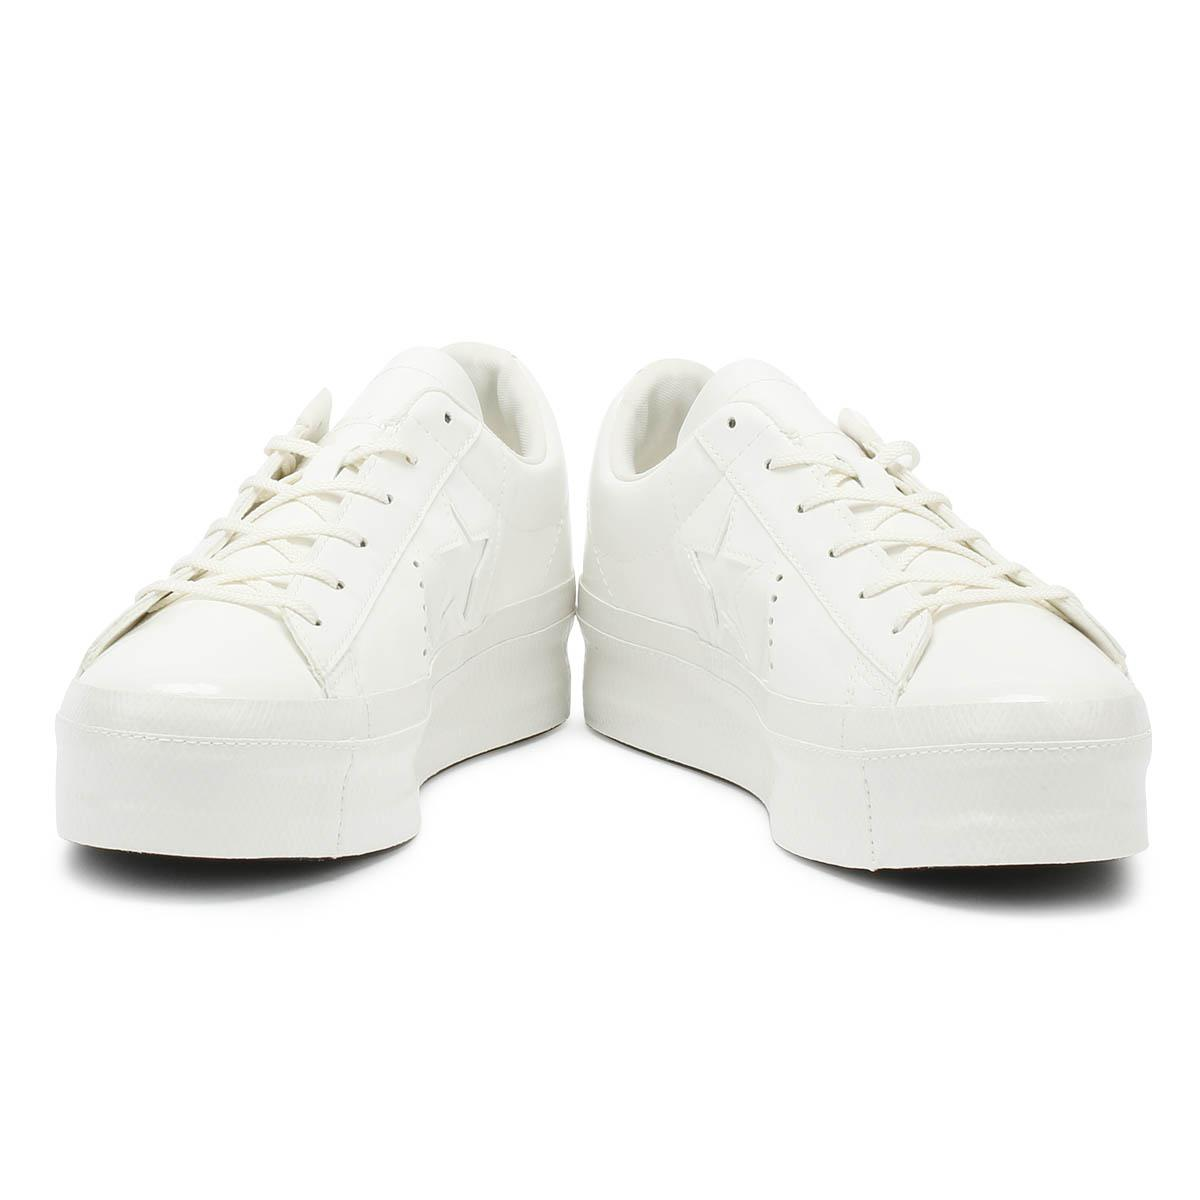 converse one star platform ox vintage white sneakers